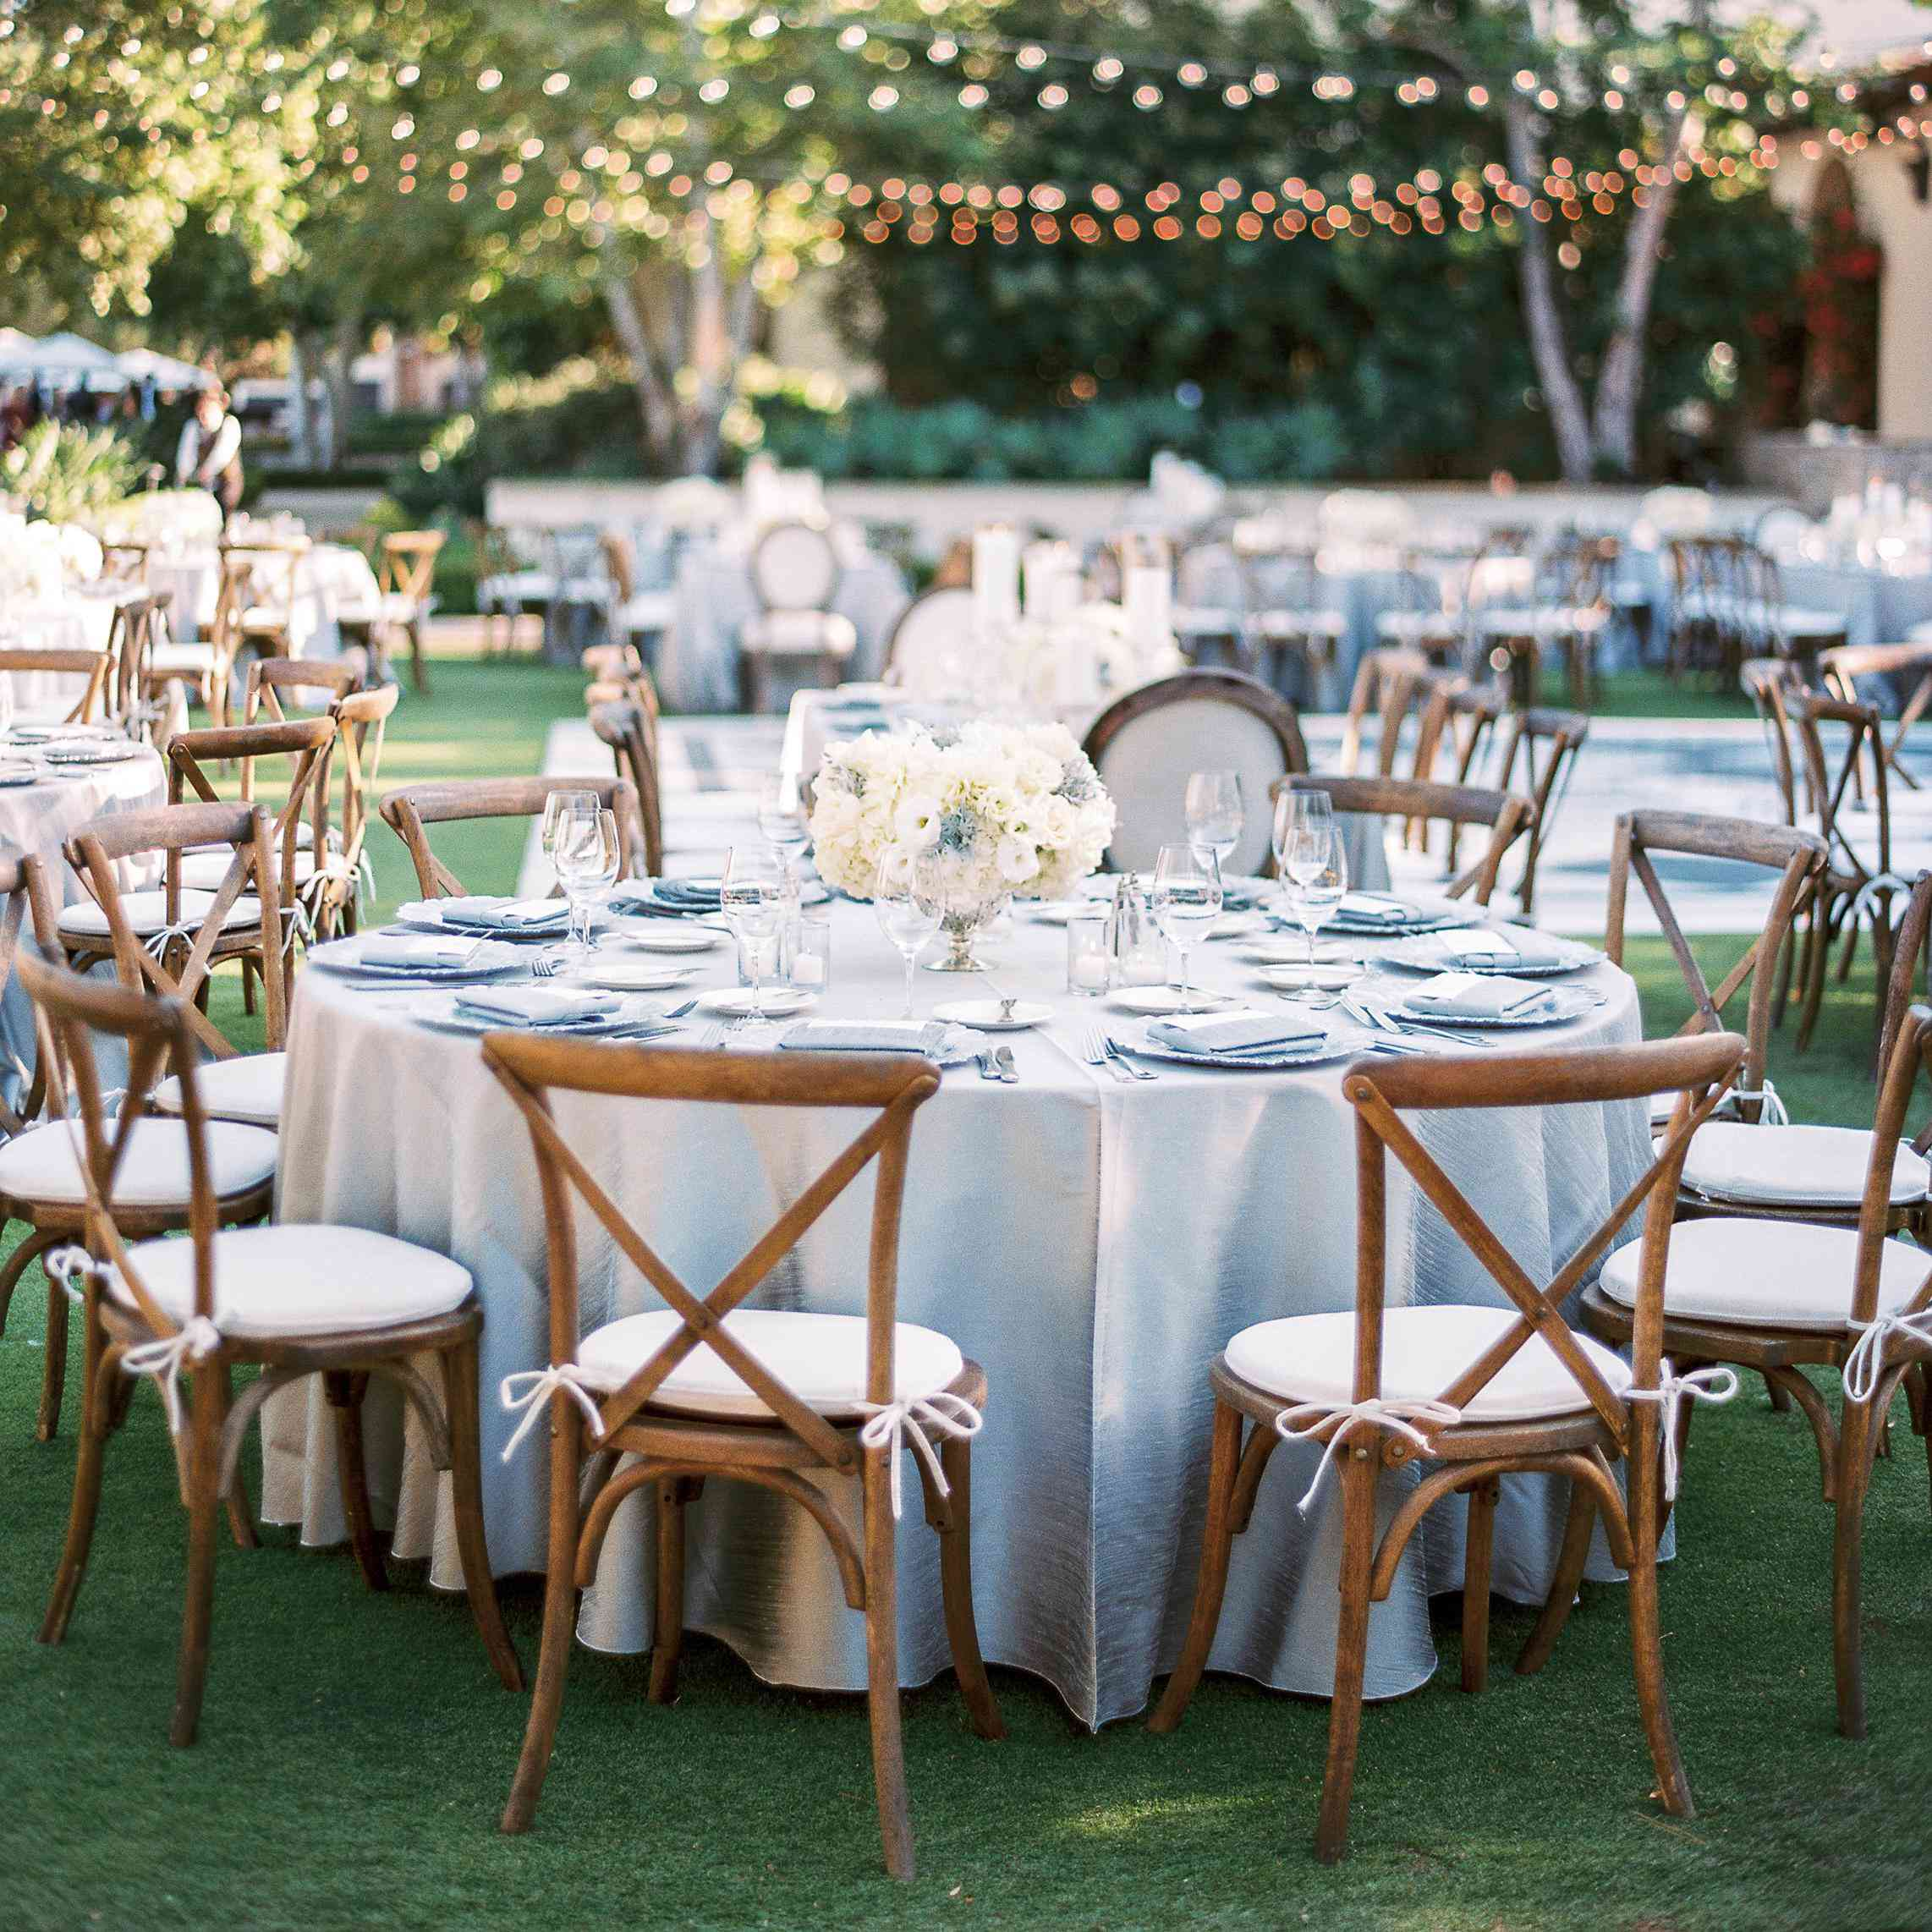 Wedding Caterers Cost.5 Easy Ways To Save On Wedding Venue And Catering Costs